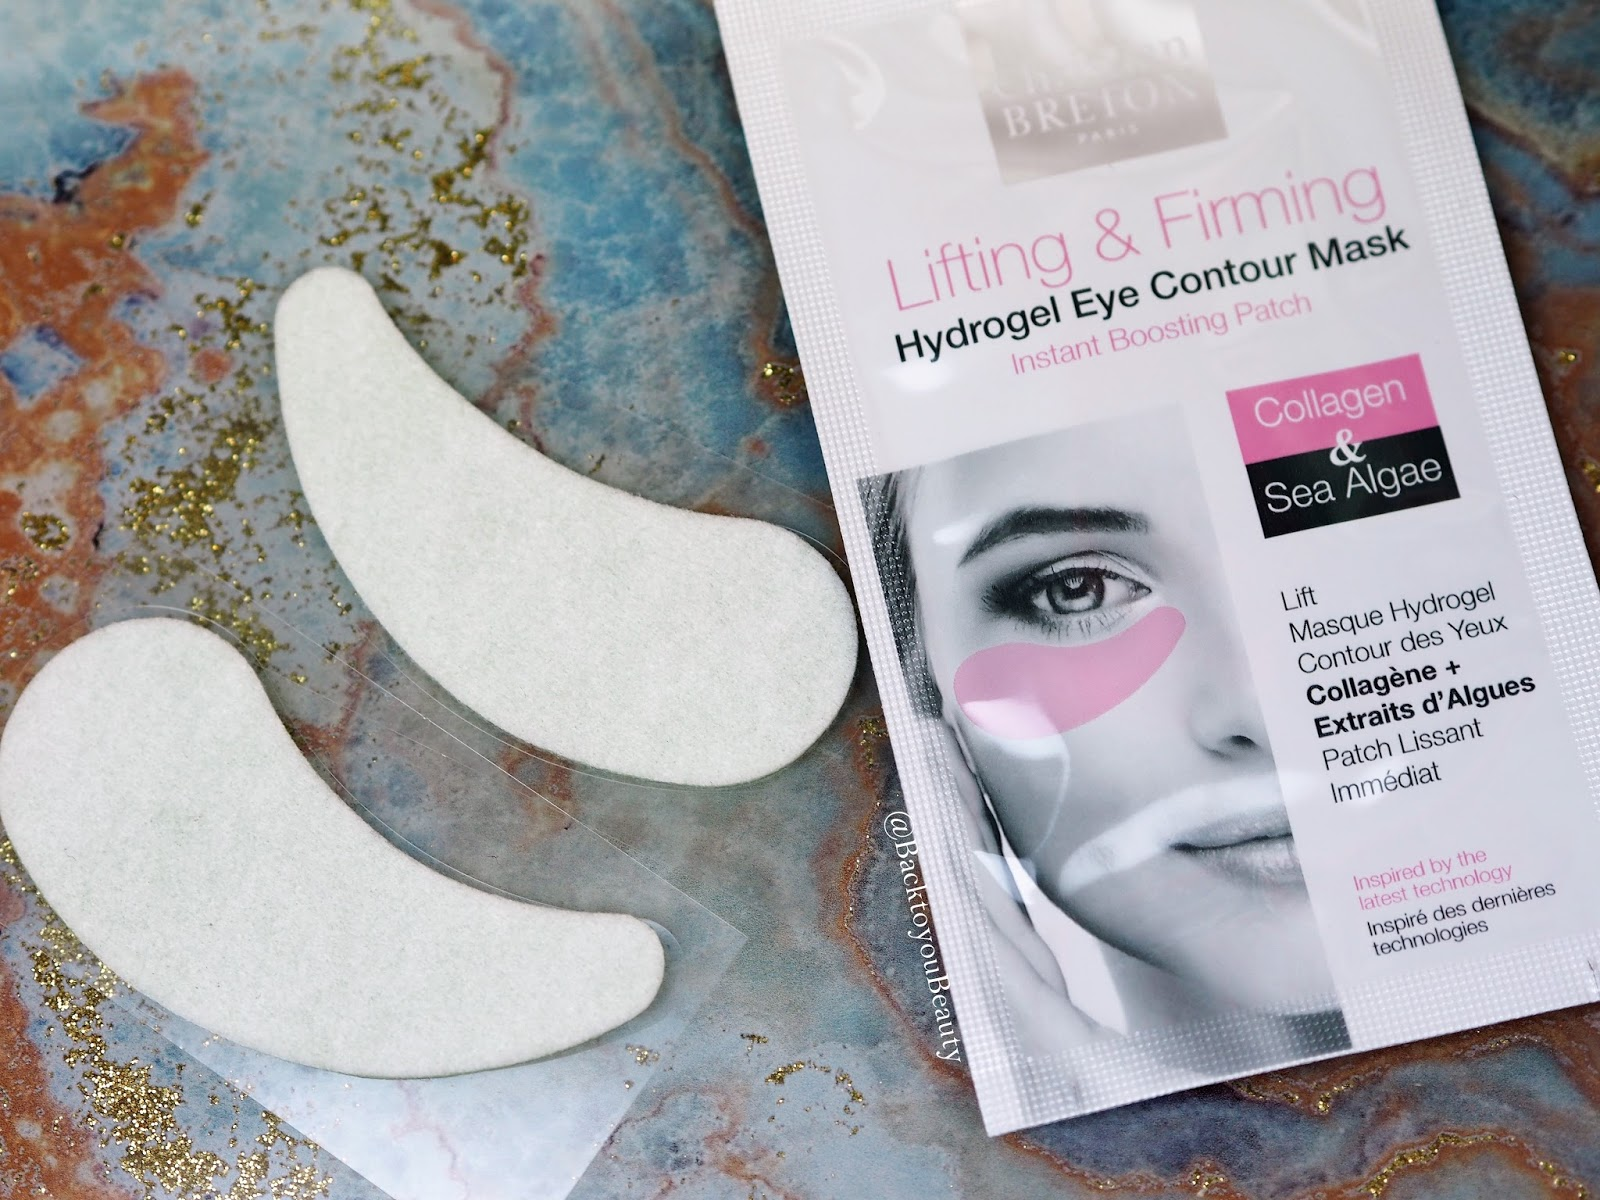 Lifting & Firming Hydrogel Eye Contour Masks x 3